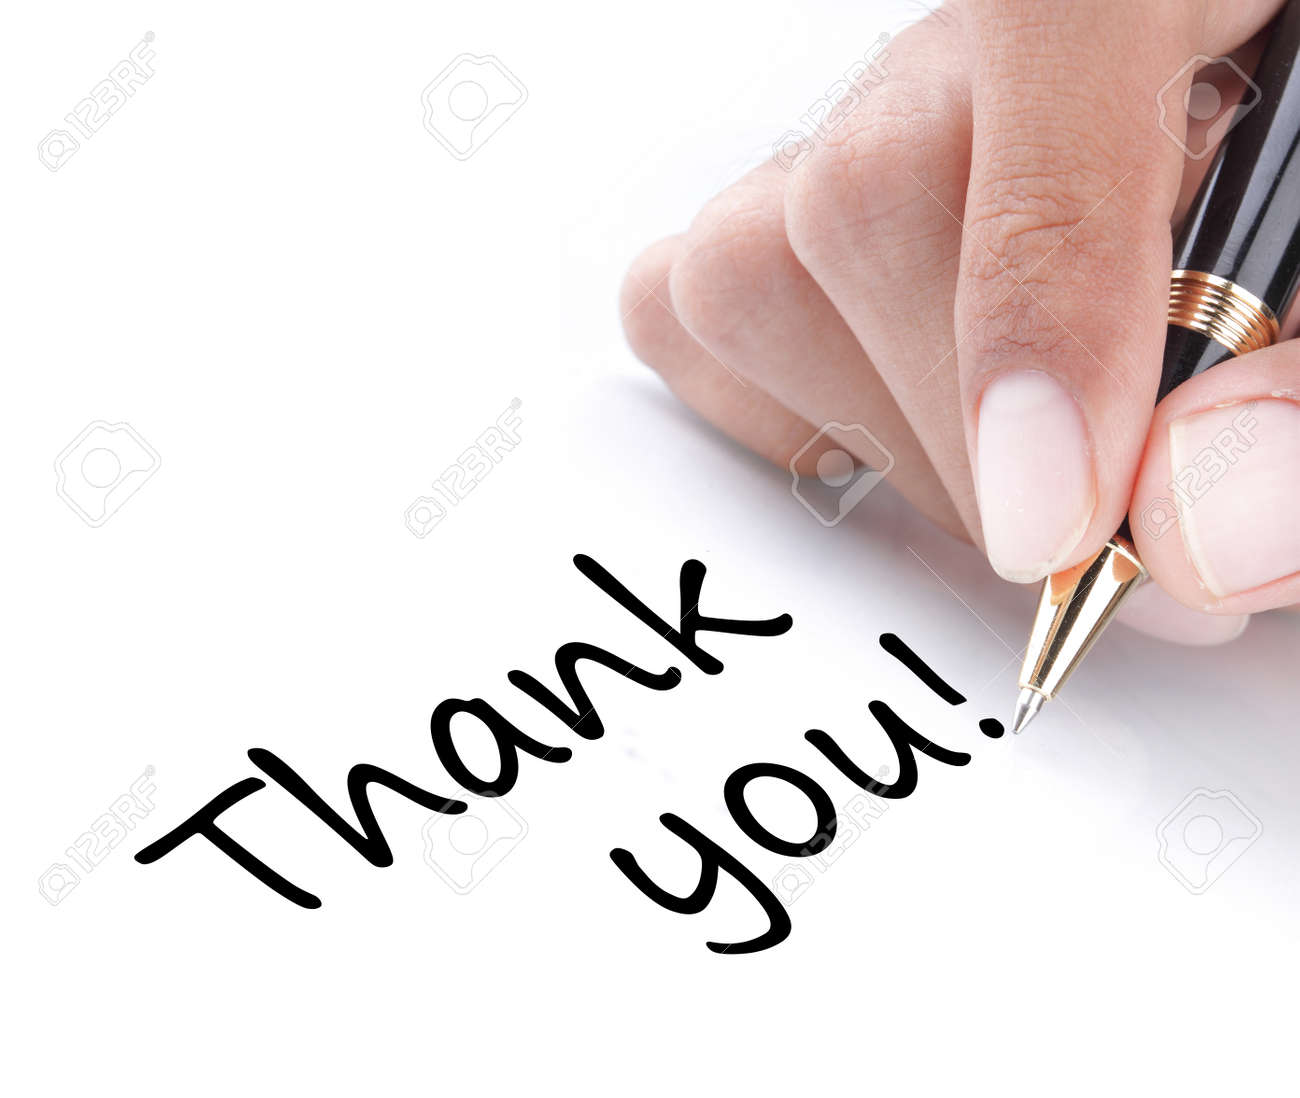 Hand Writing Thank You Isolated On White Background Stock Photo